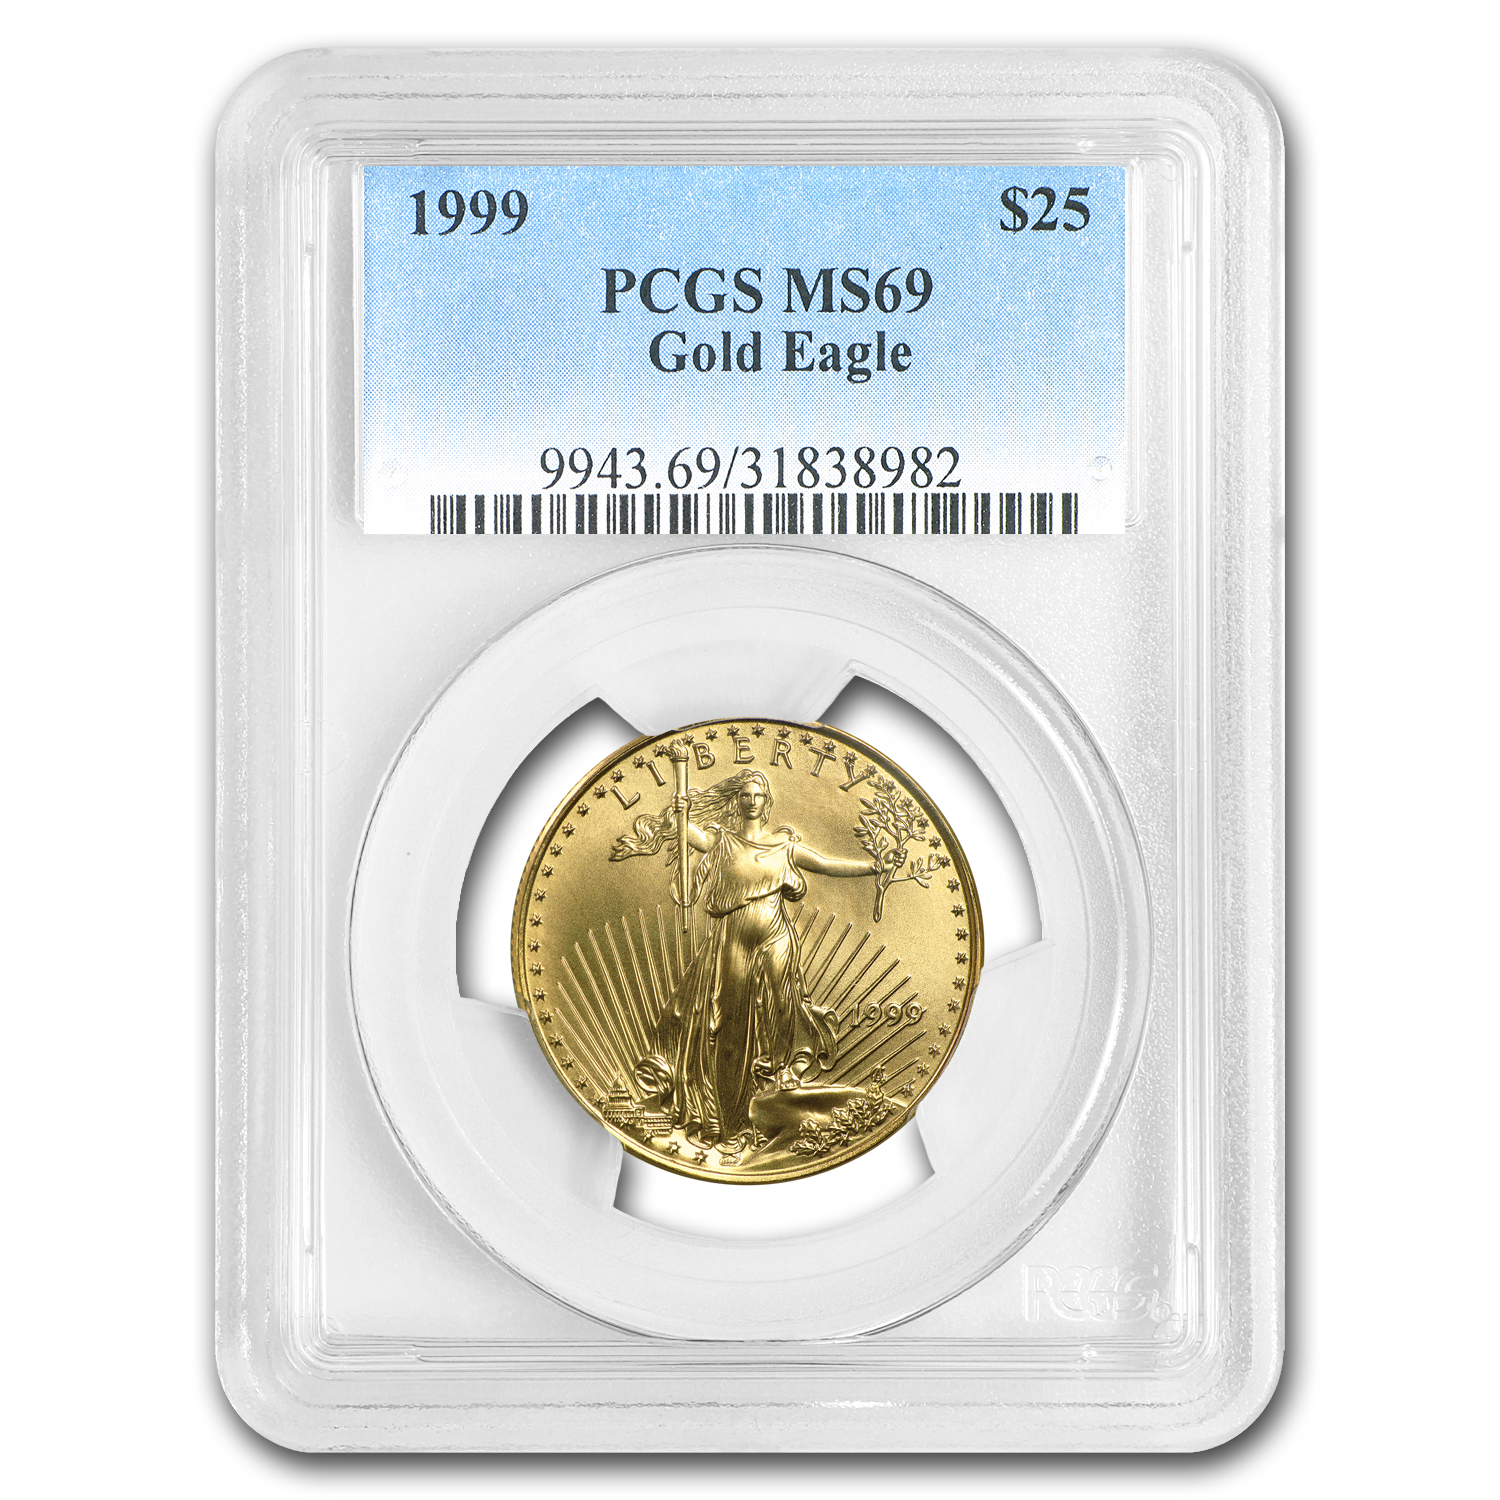 1999 1/2 oz Gold American Eagle MS-69 PCGS